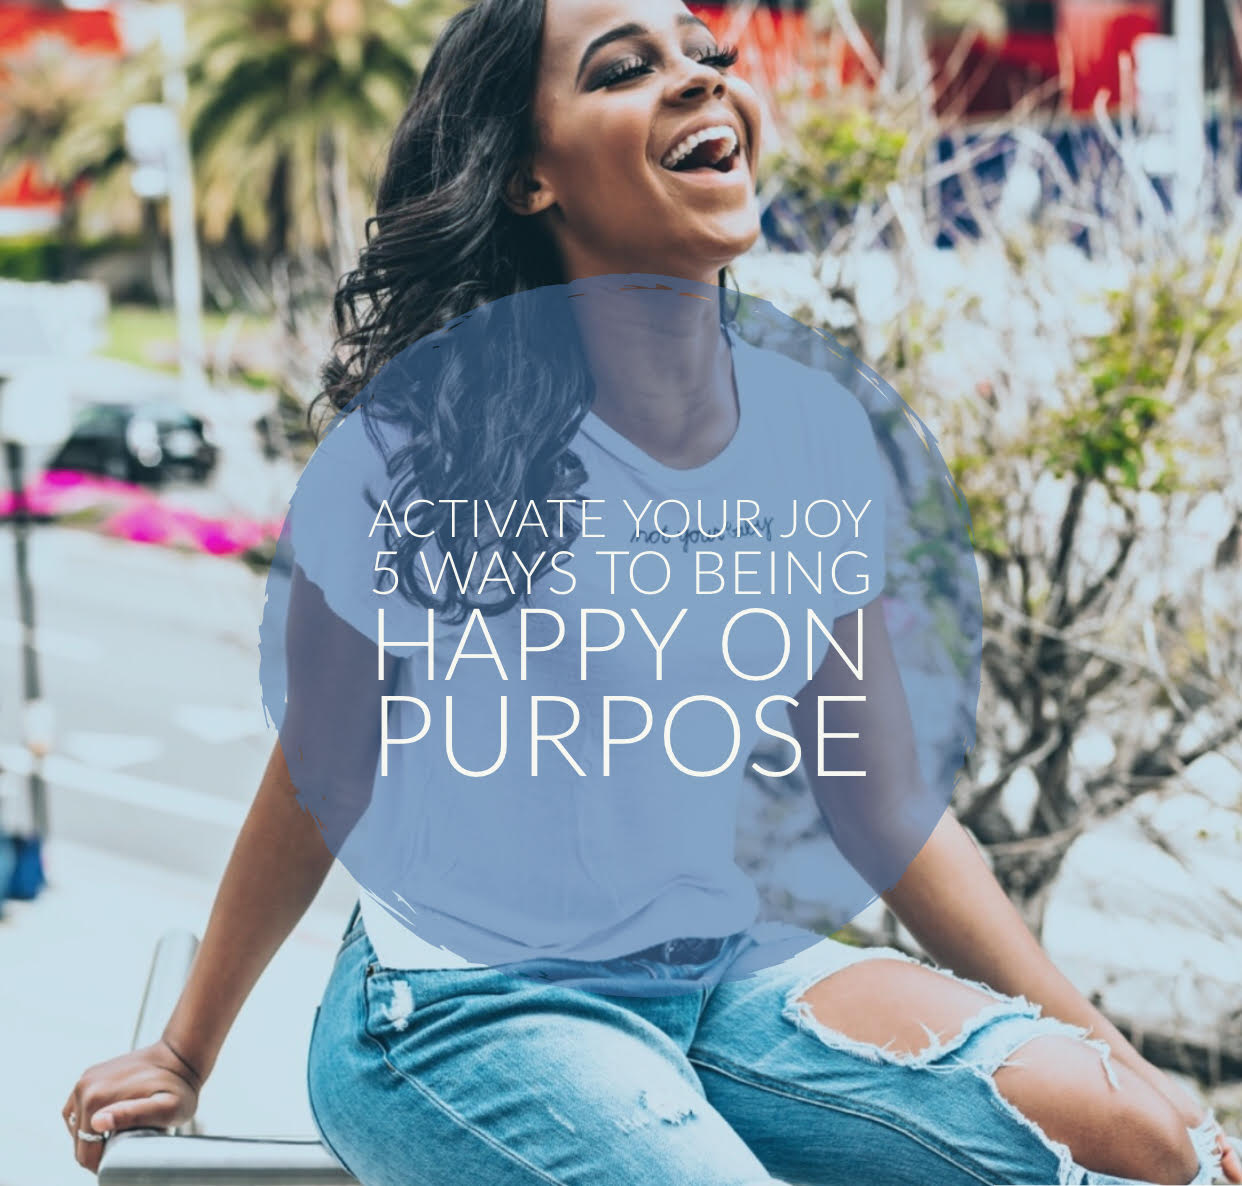 Activate Your Joy: 5 ways to being happy on purpose